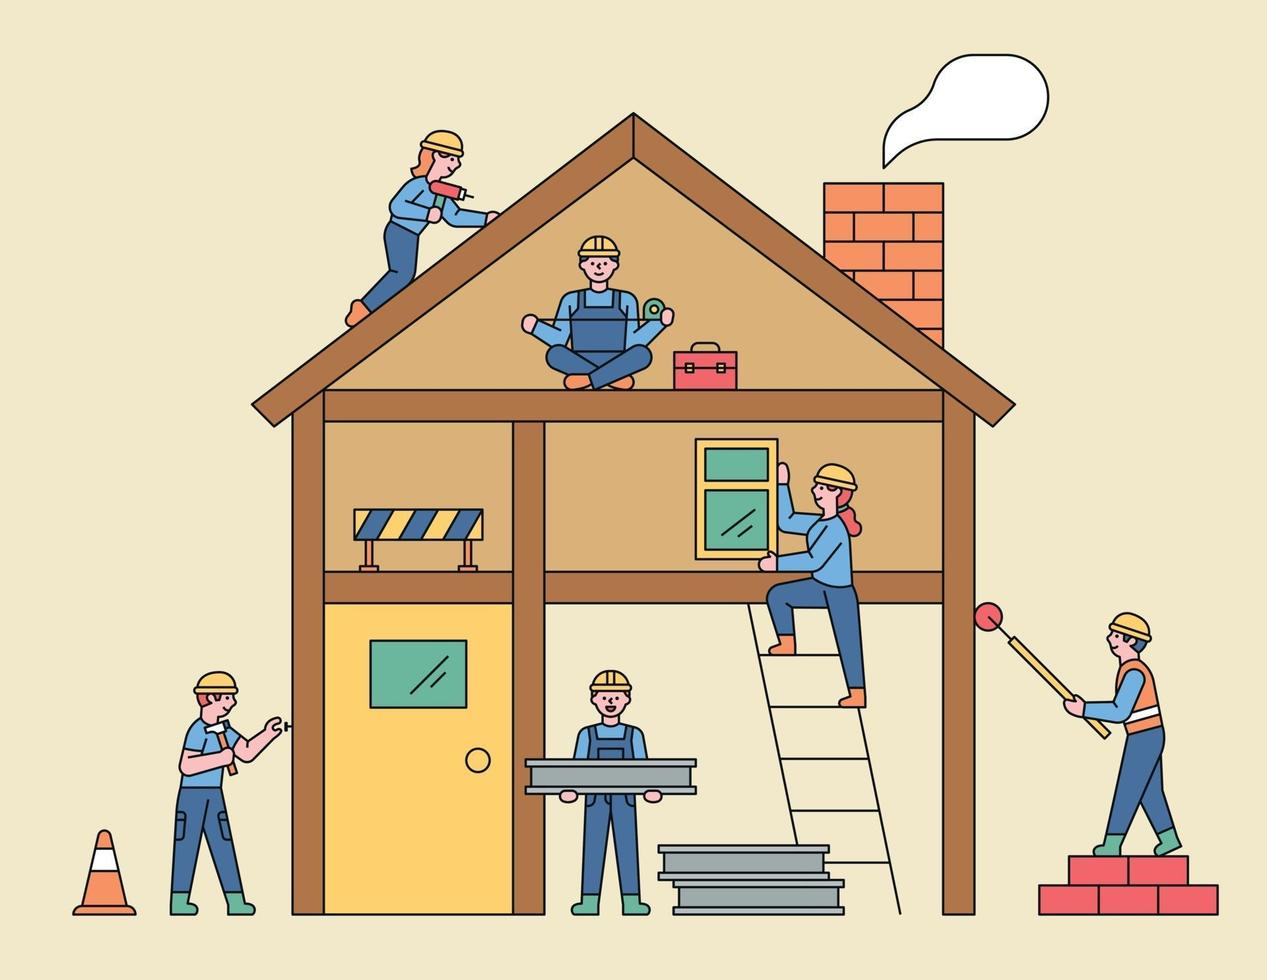 People at the construction site. Cute people are building houses around the section of the house. flat design style minimal vector illustration.